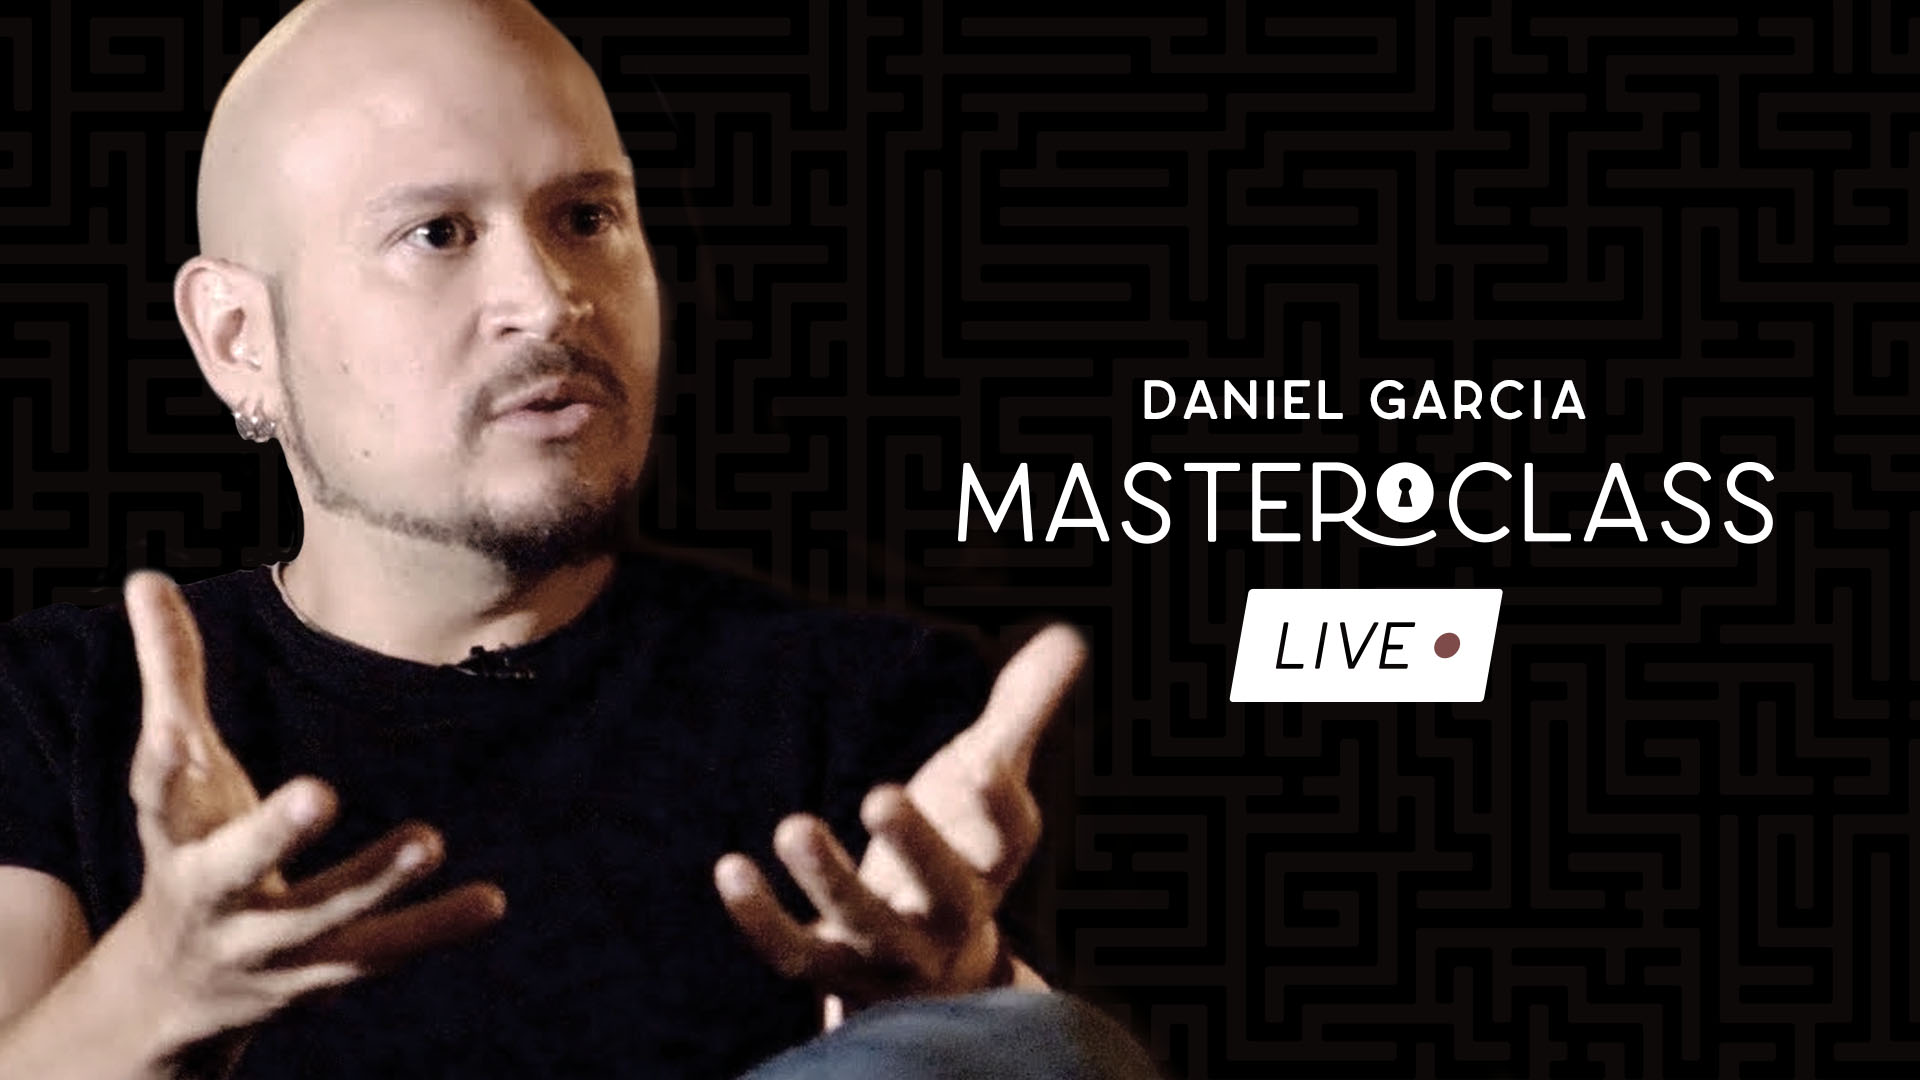 Daniel Garcia: Masterclass: Live - Vanishing Inc. Magic shop